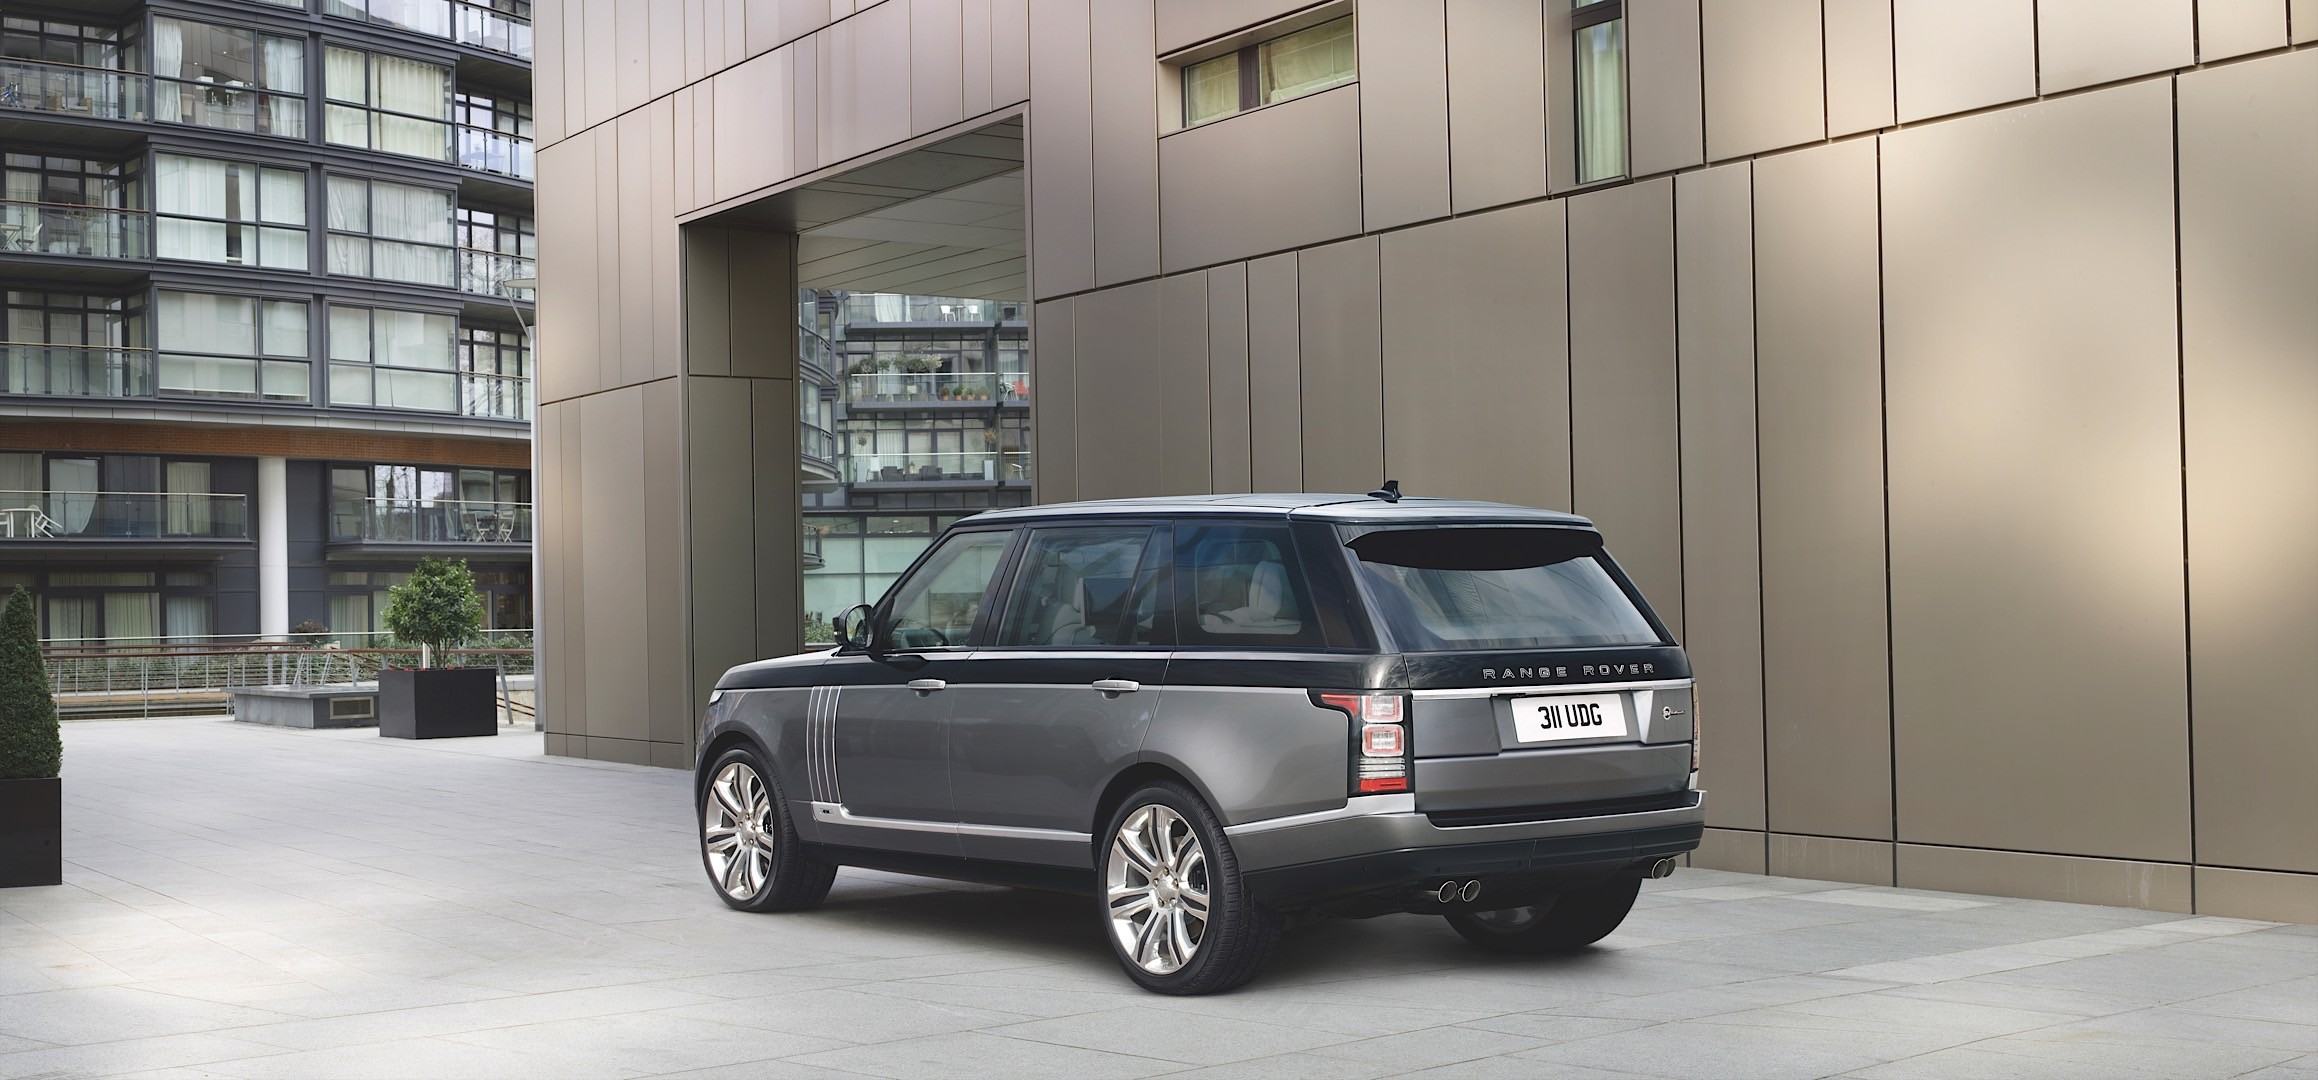 2016 Range Rover SVAutobiography Springs Out Gets $199 495 Price